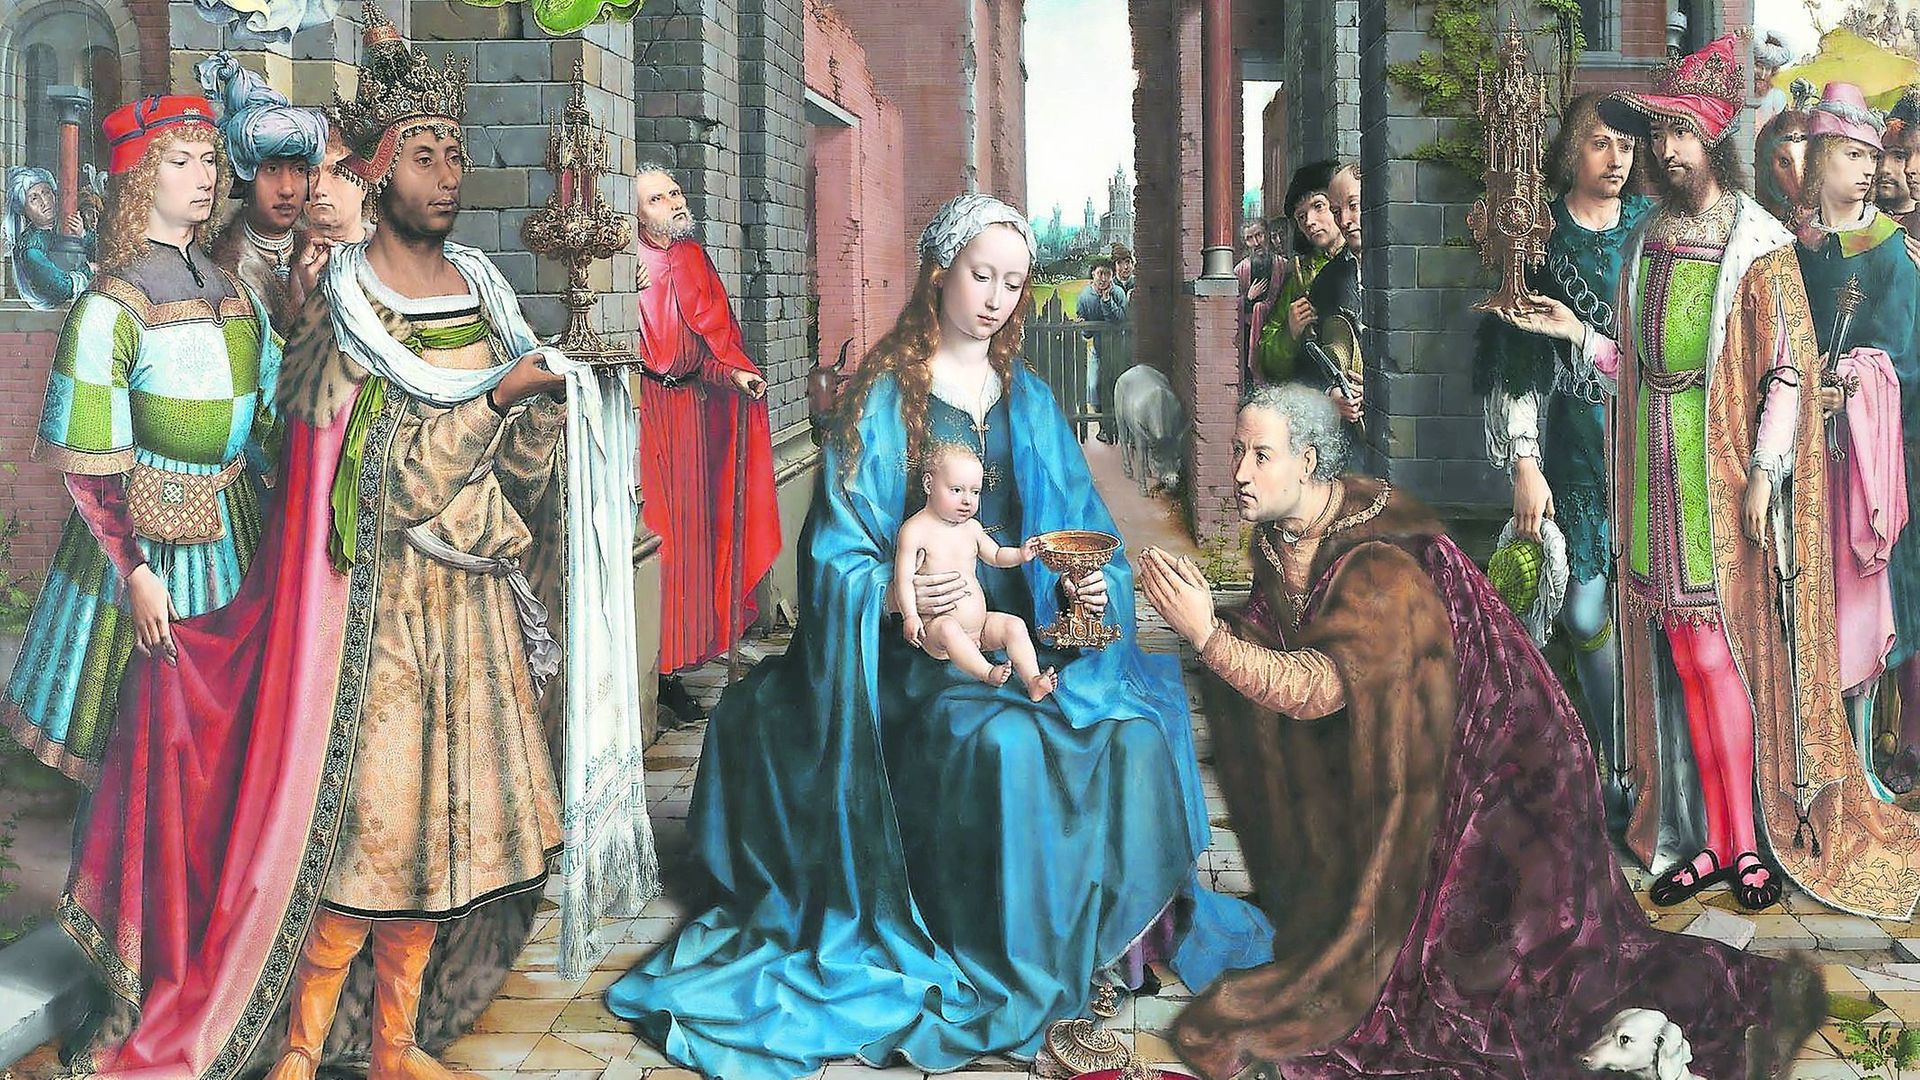 Masterpiece: Jan Gossaert's The Adoration of the Kings, c1510. - Credit: The National Gallery, London